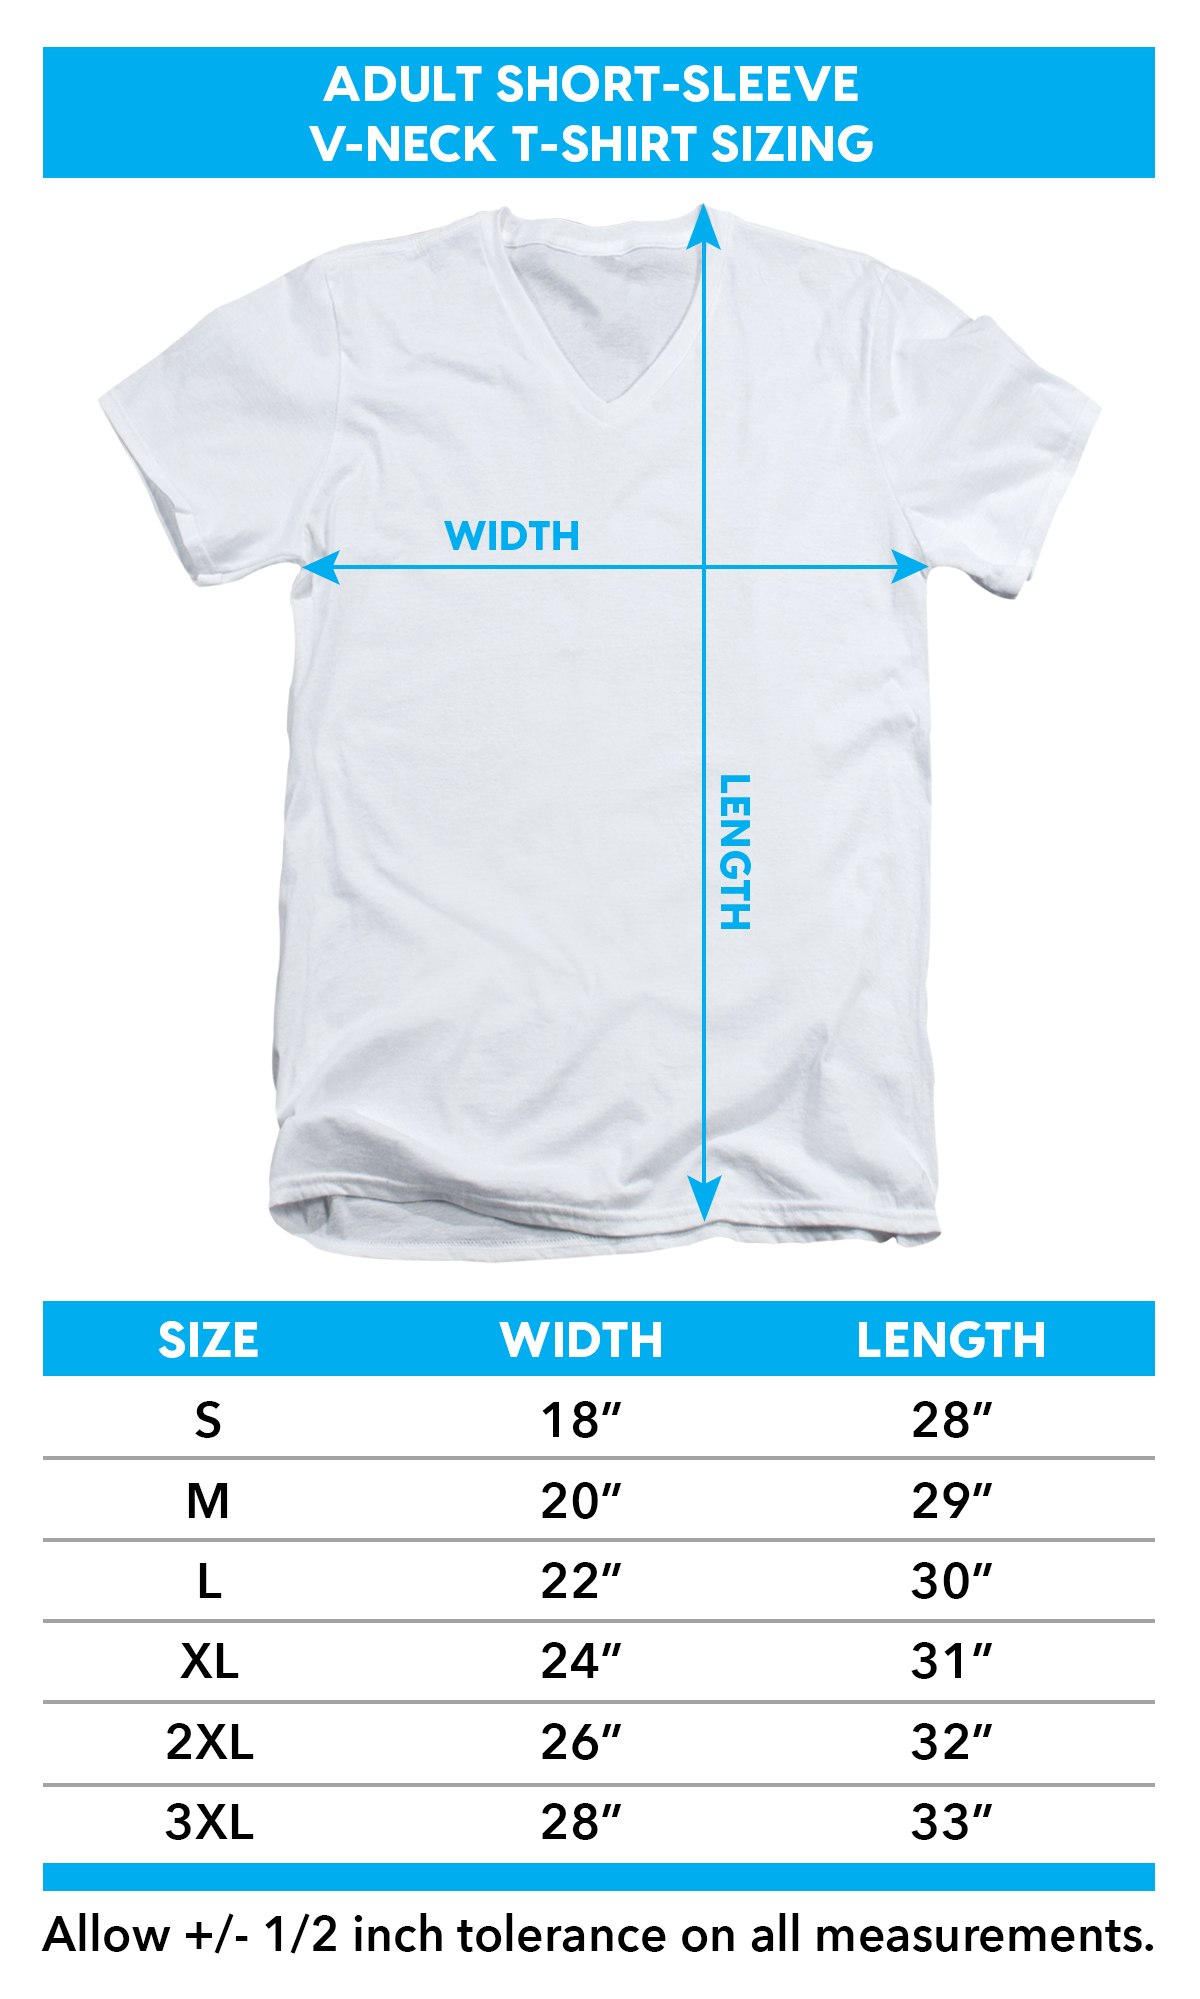 V Neck Sizing chart